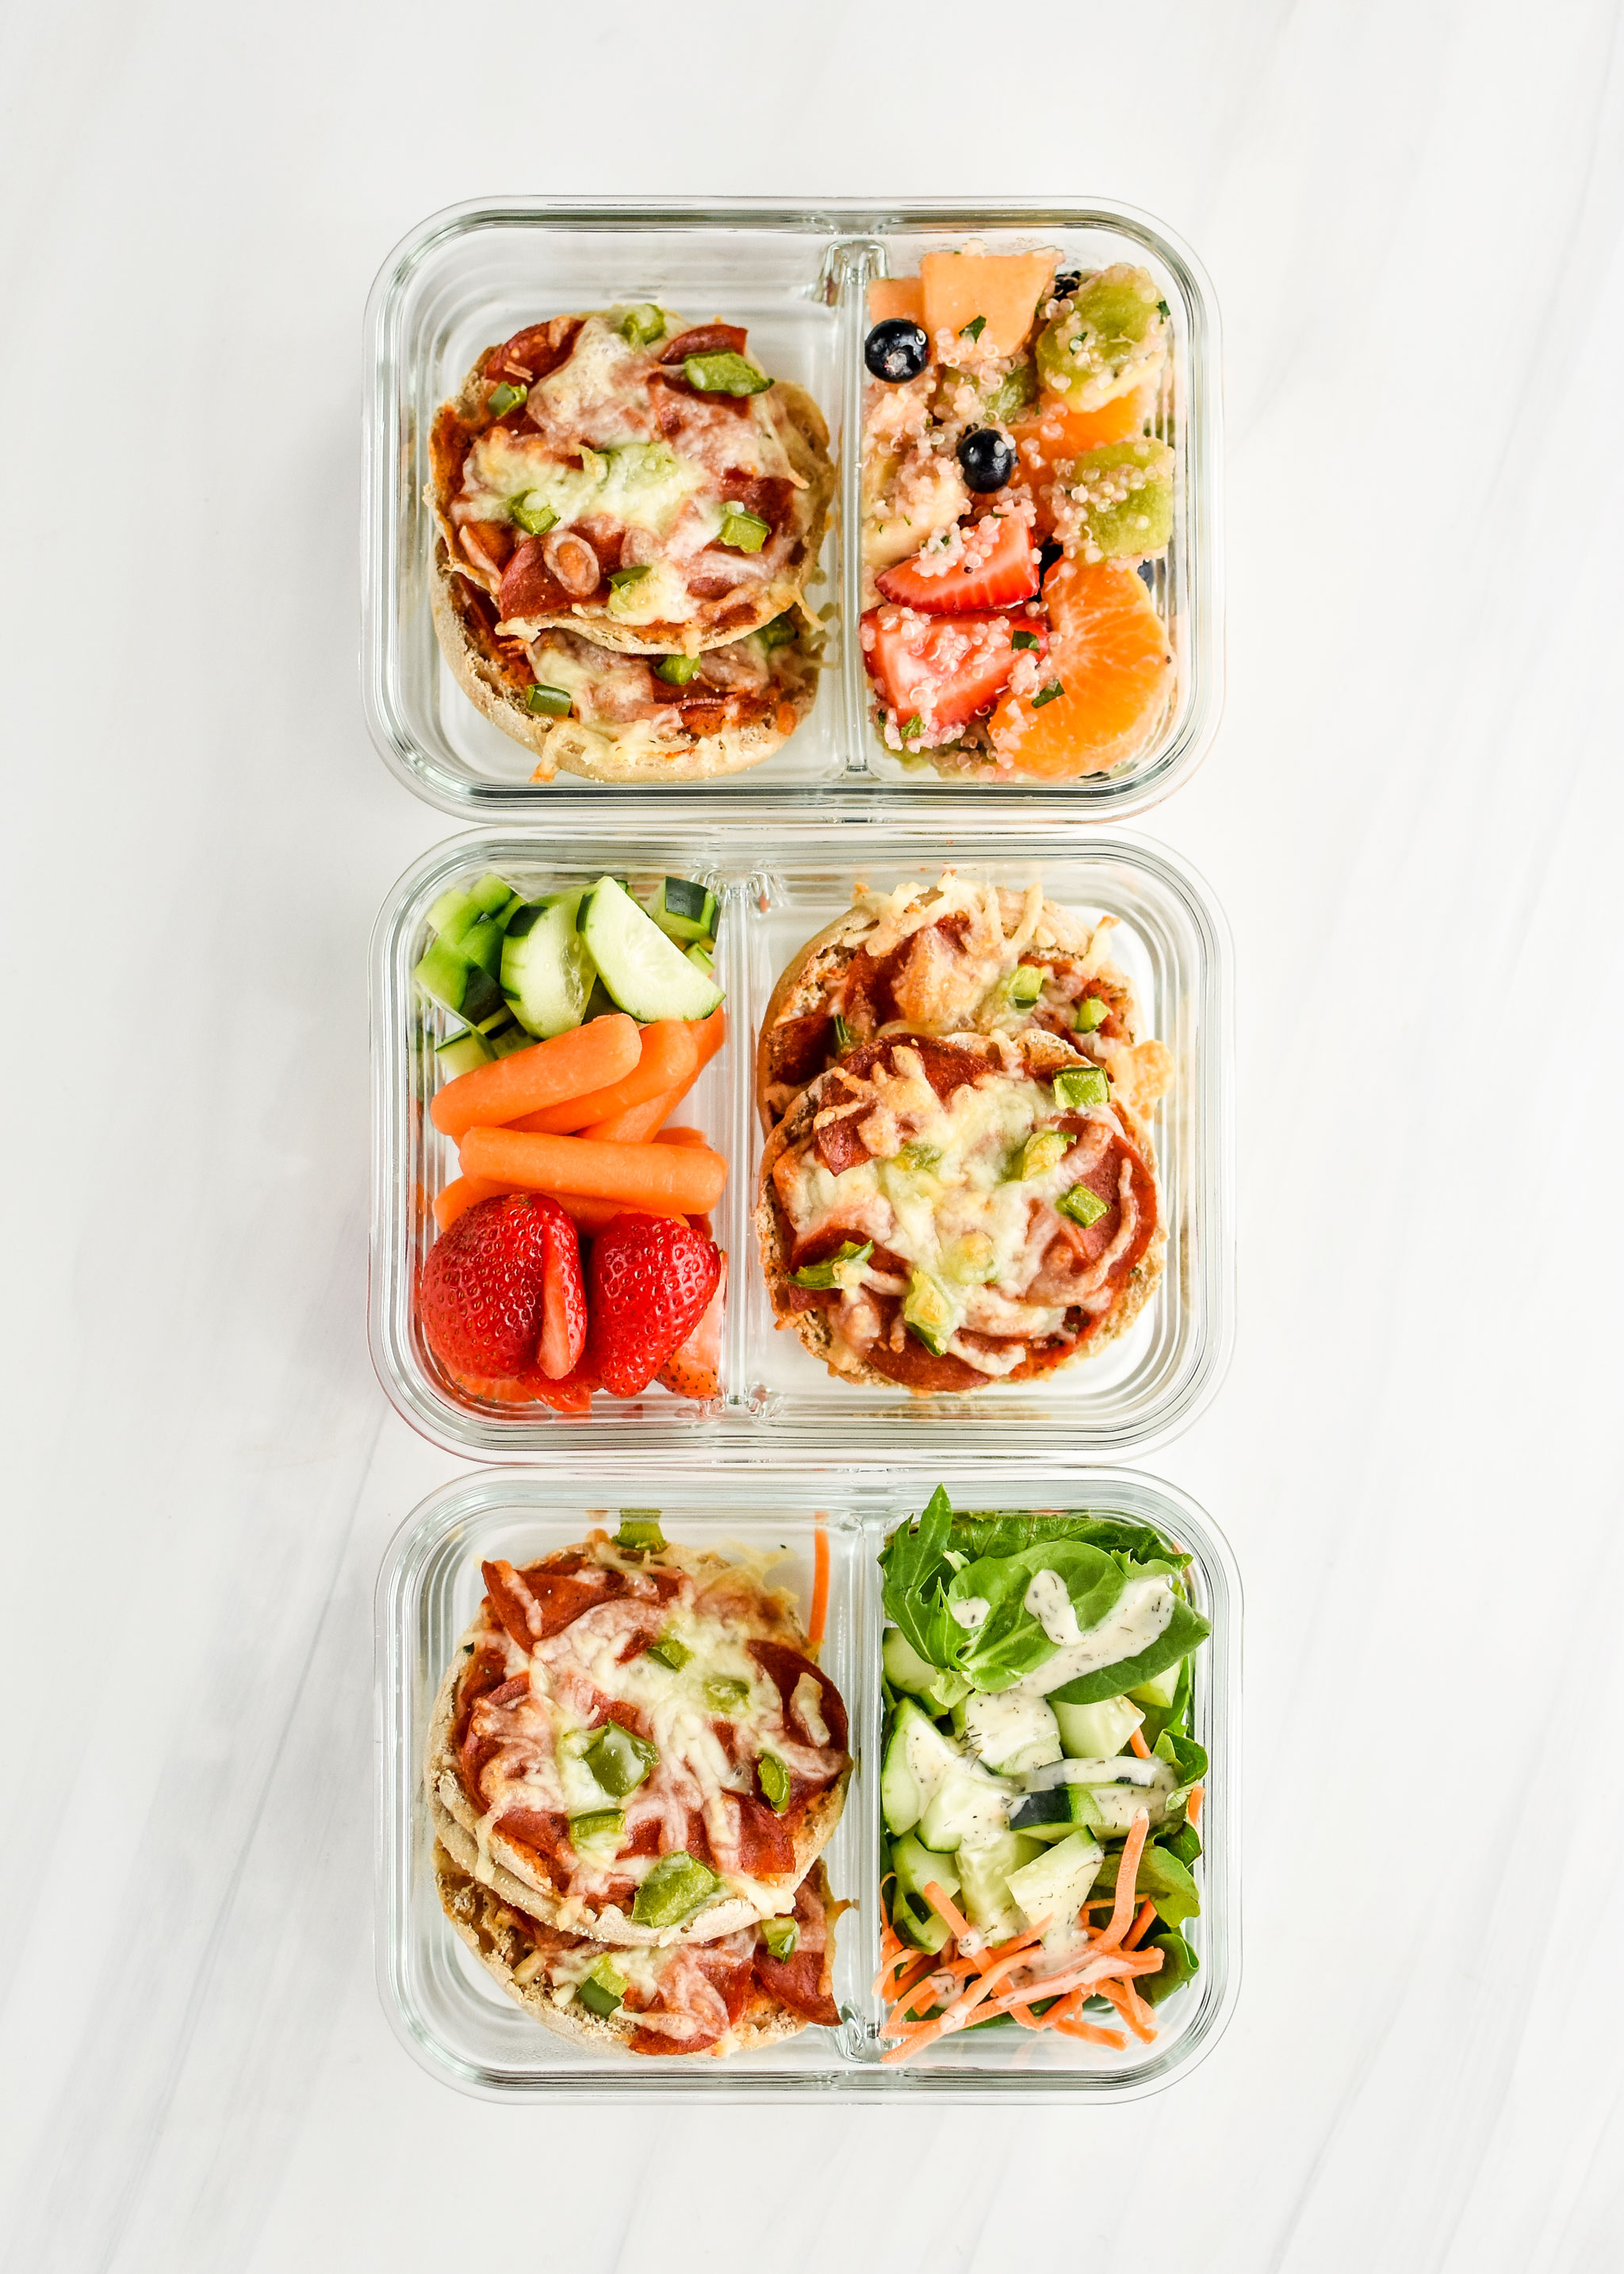 English muffin mini pizzas pictured in meal prep containers with fresh produce or salads.